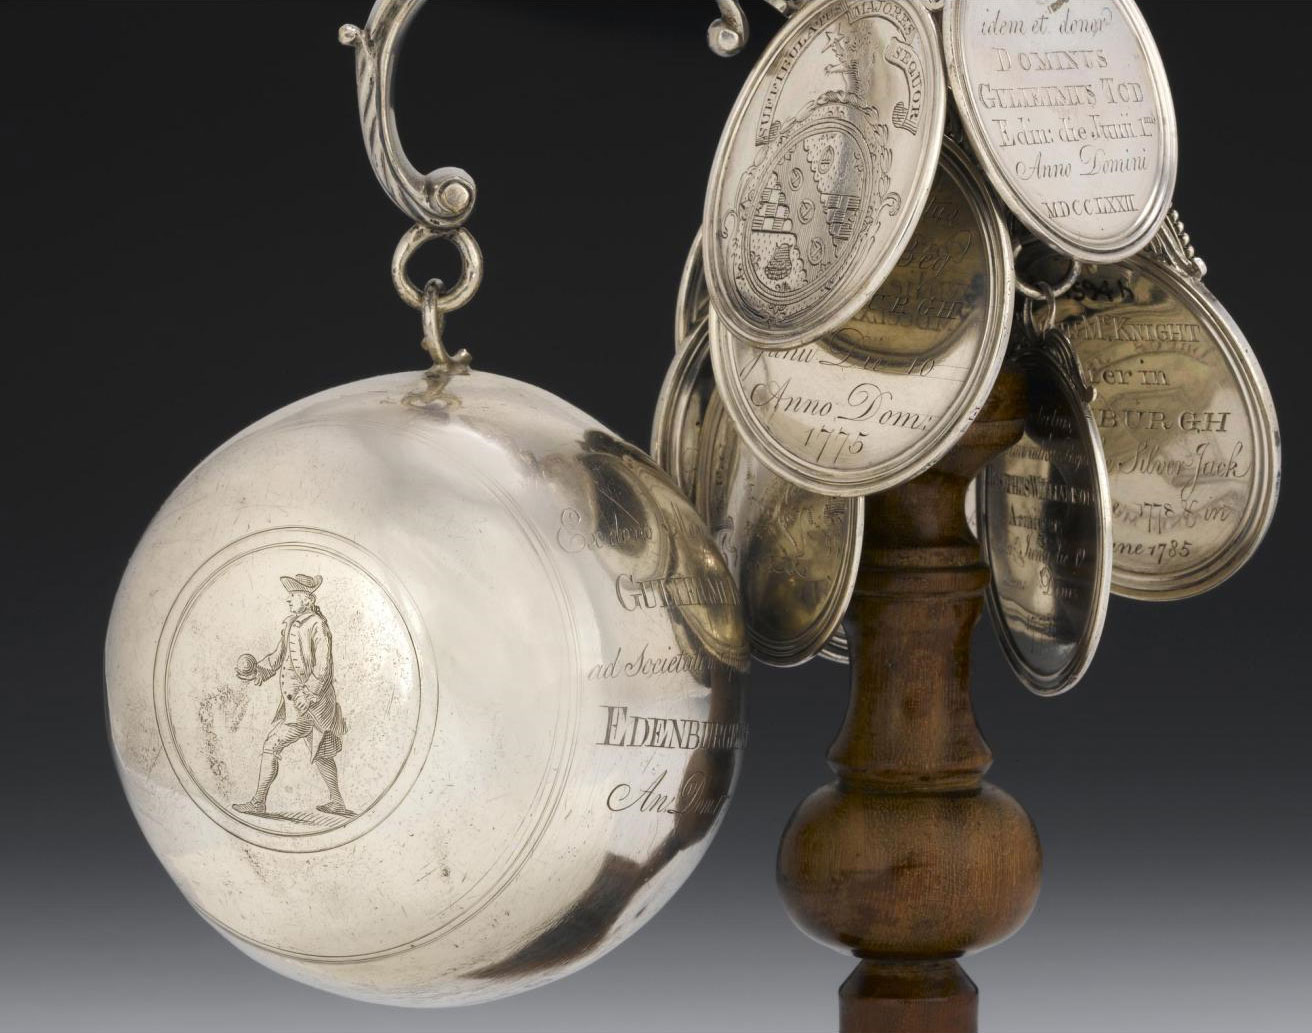 Bowling trophy of the Edinburgh Society of Bowlers, c. 1771